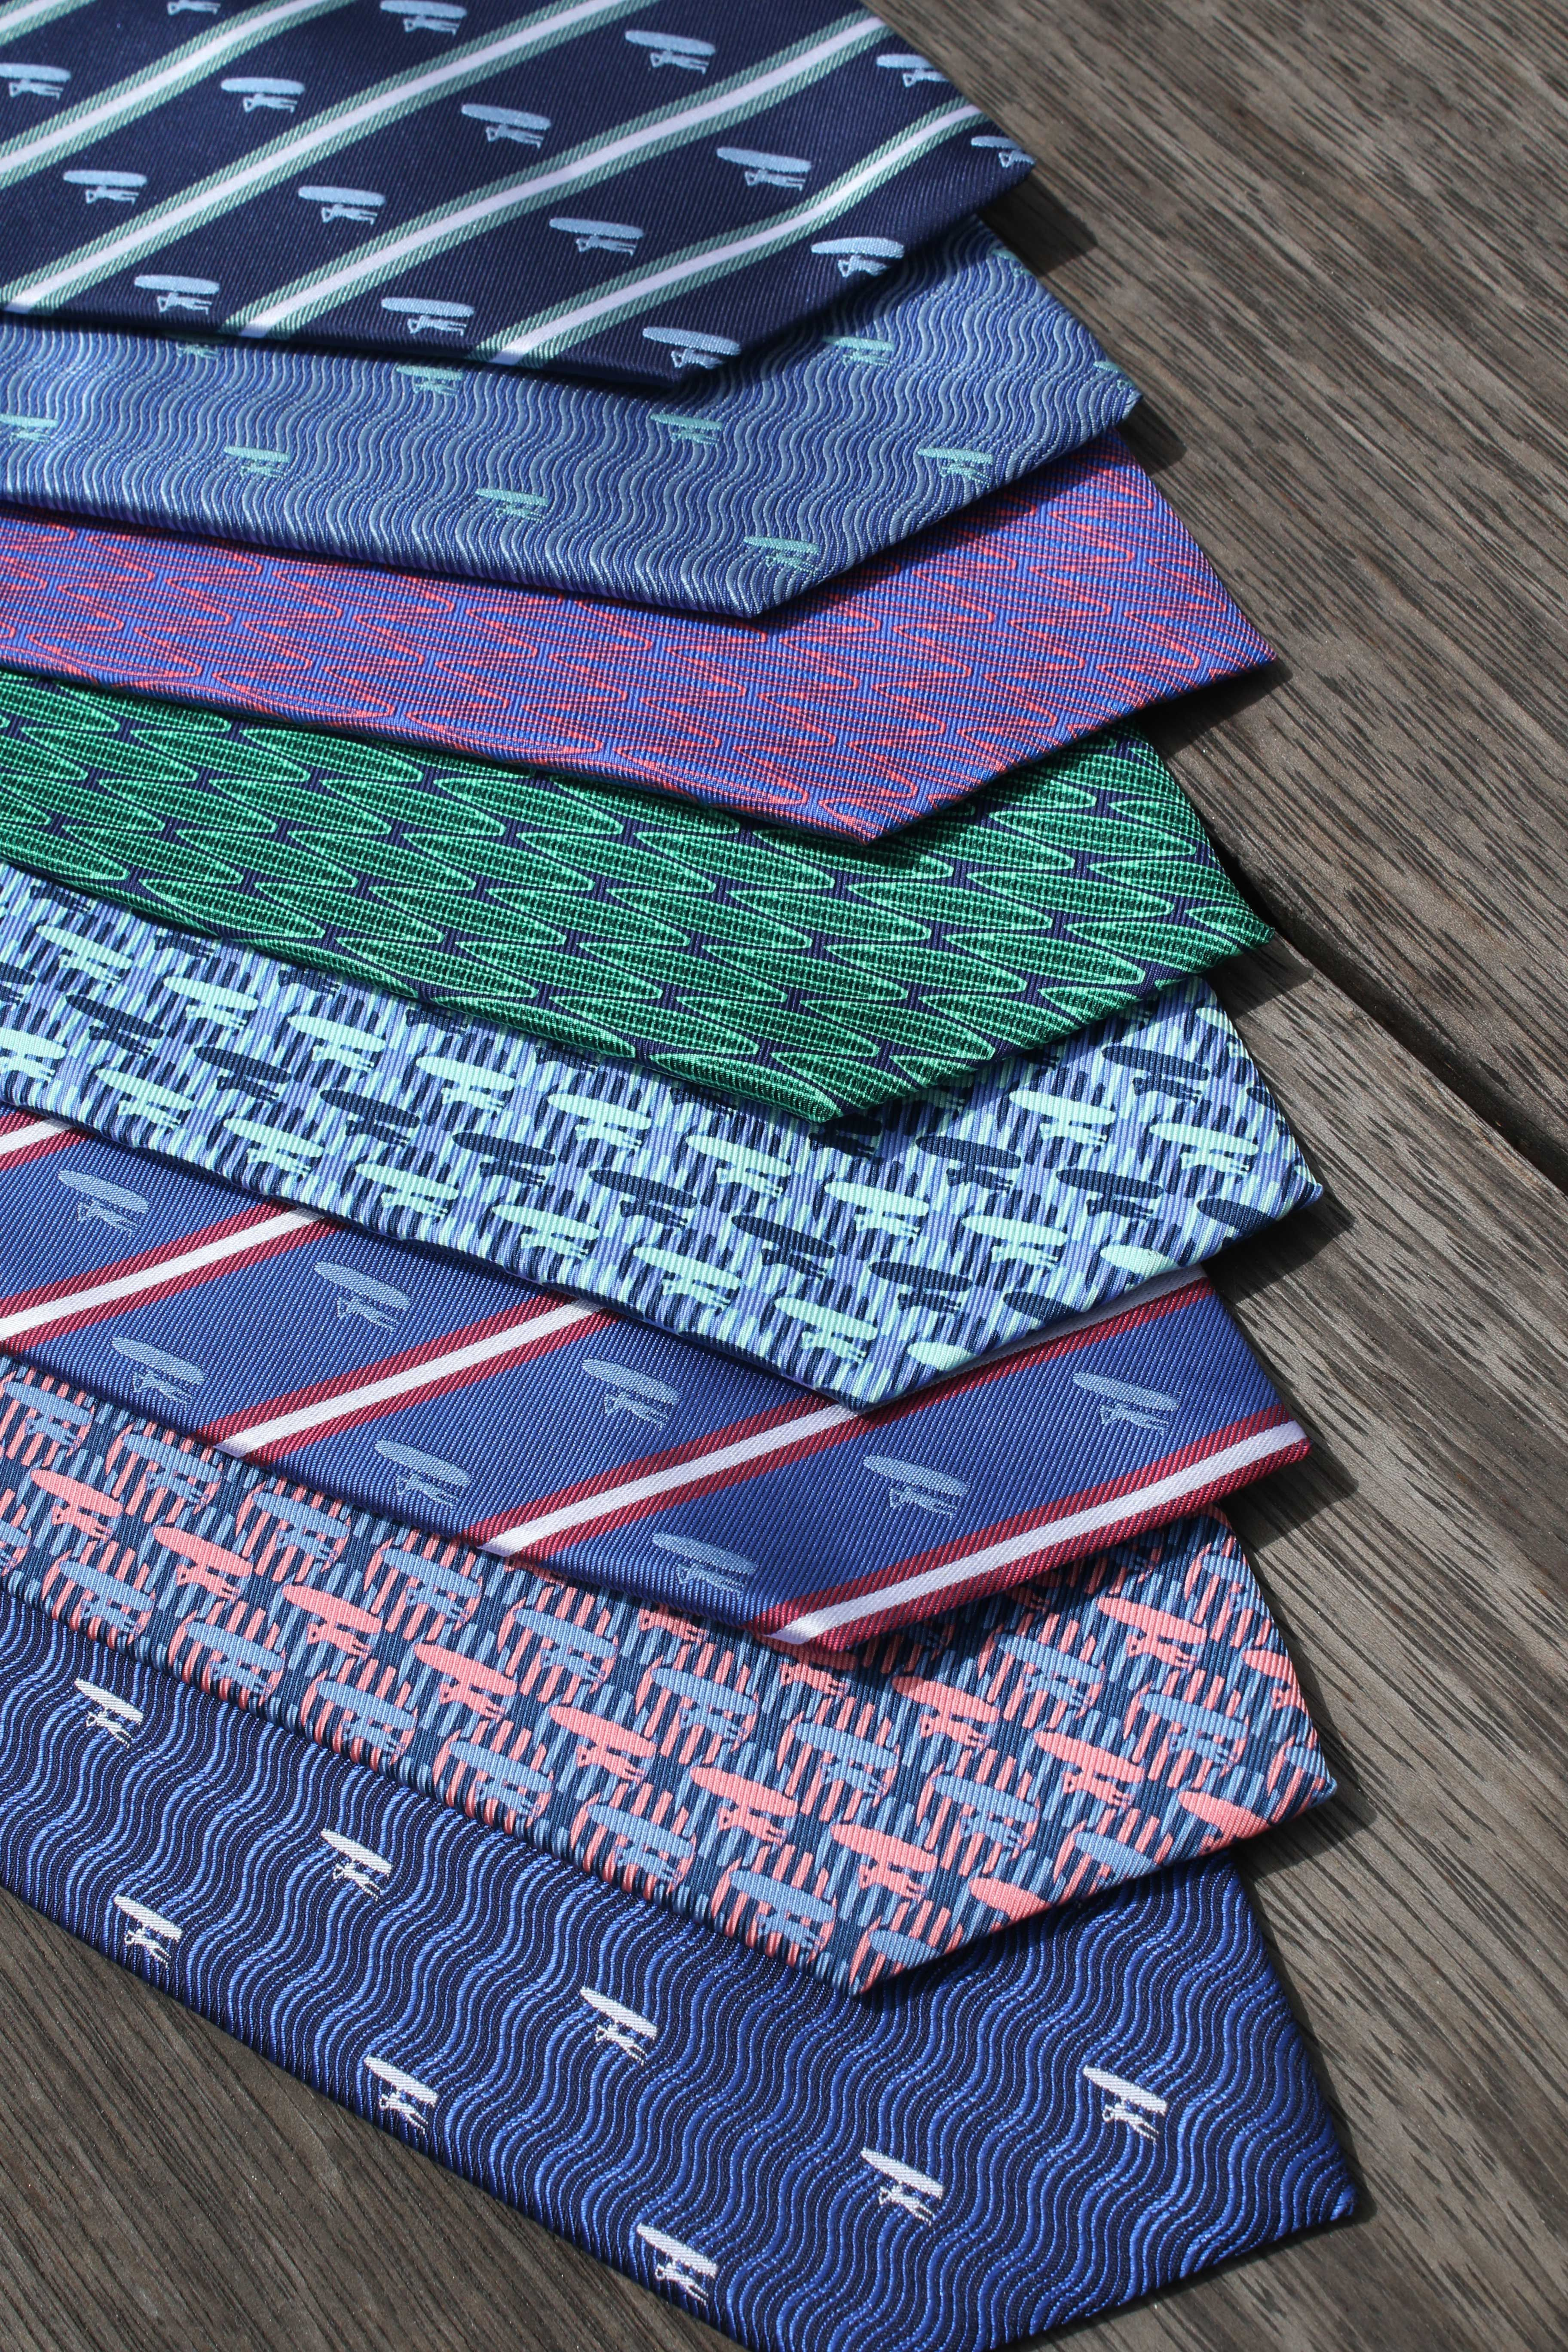 You can never go wrong with a classic johnnie-O tie for Father's Day. #WestCoastPrep